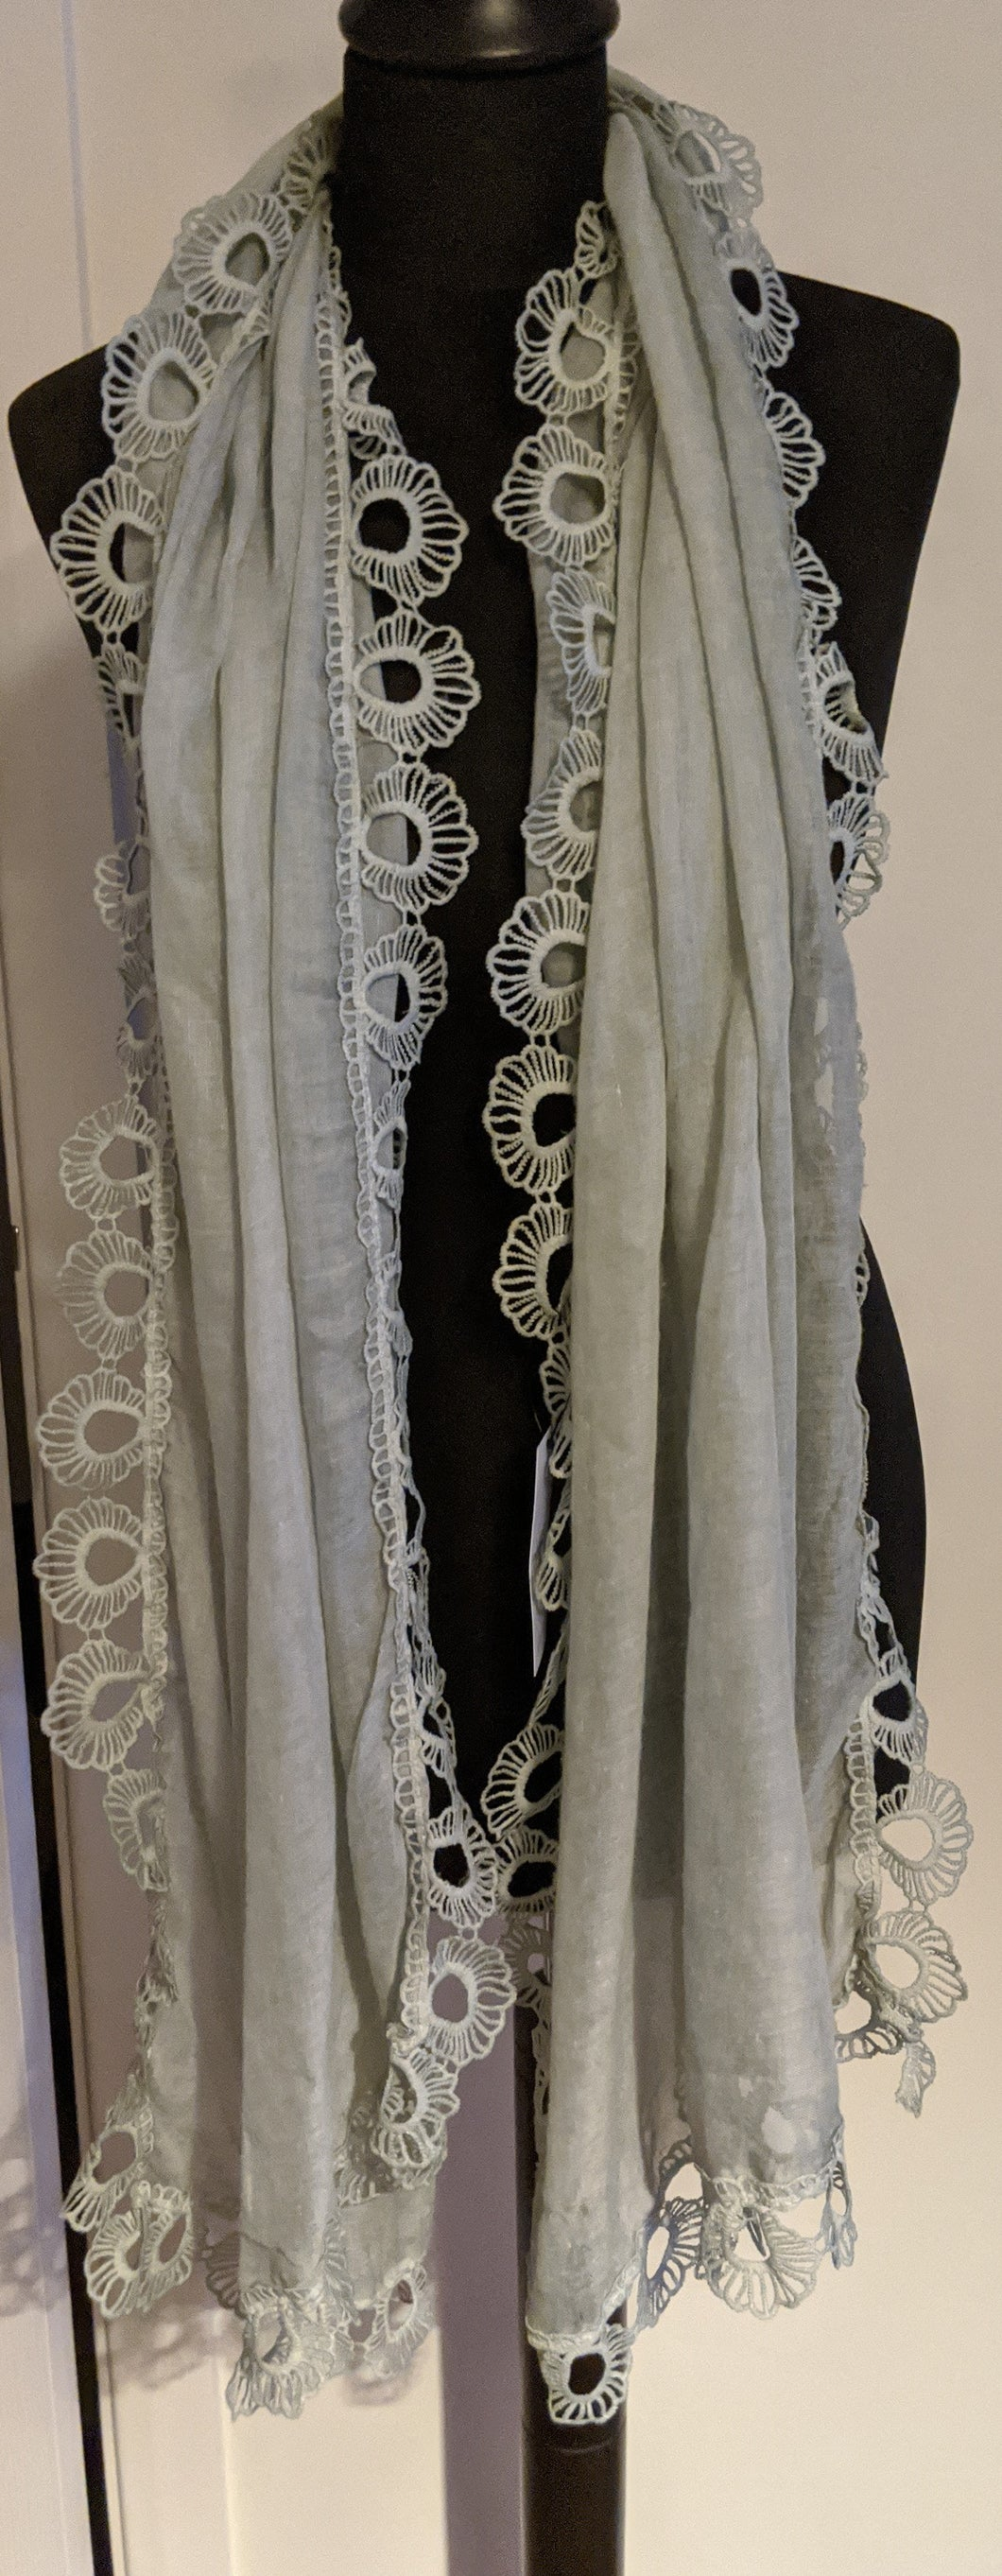 Scarf/Shawl with Lace Scallop edge